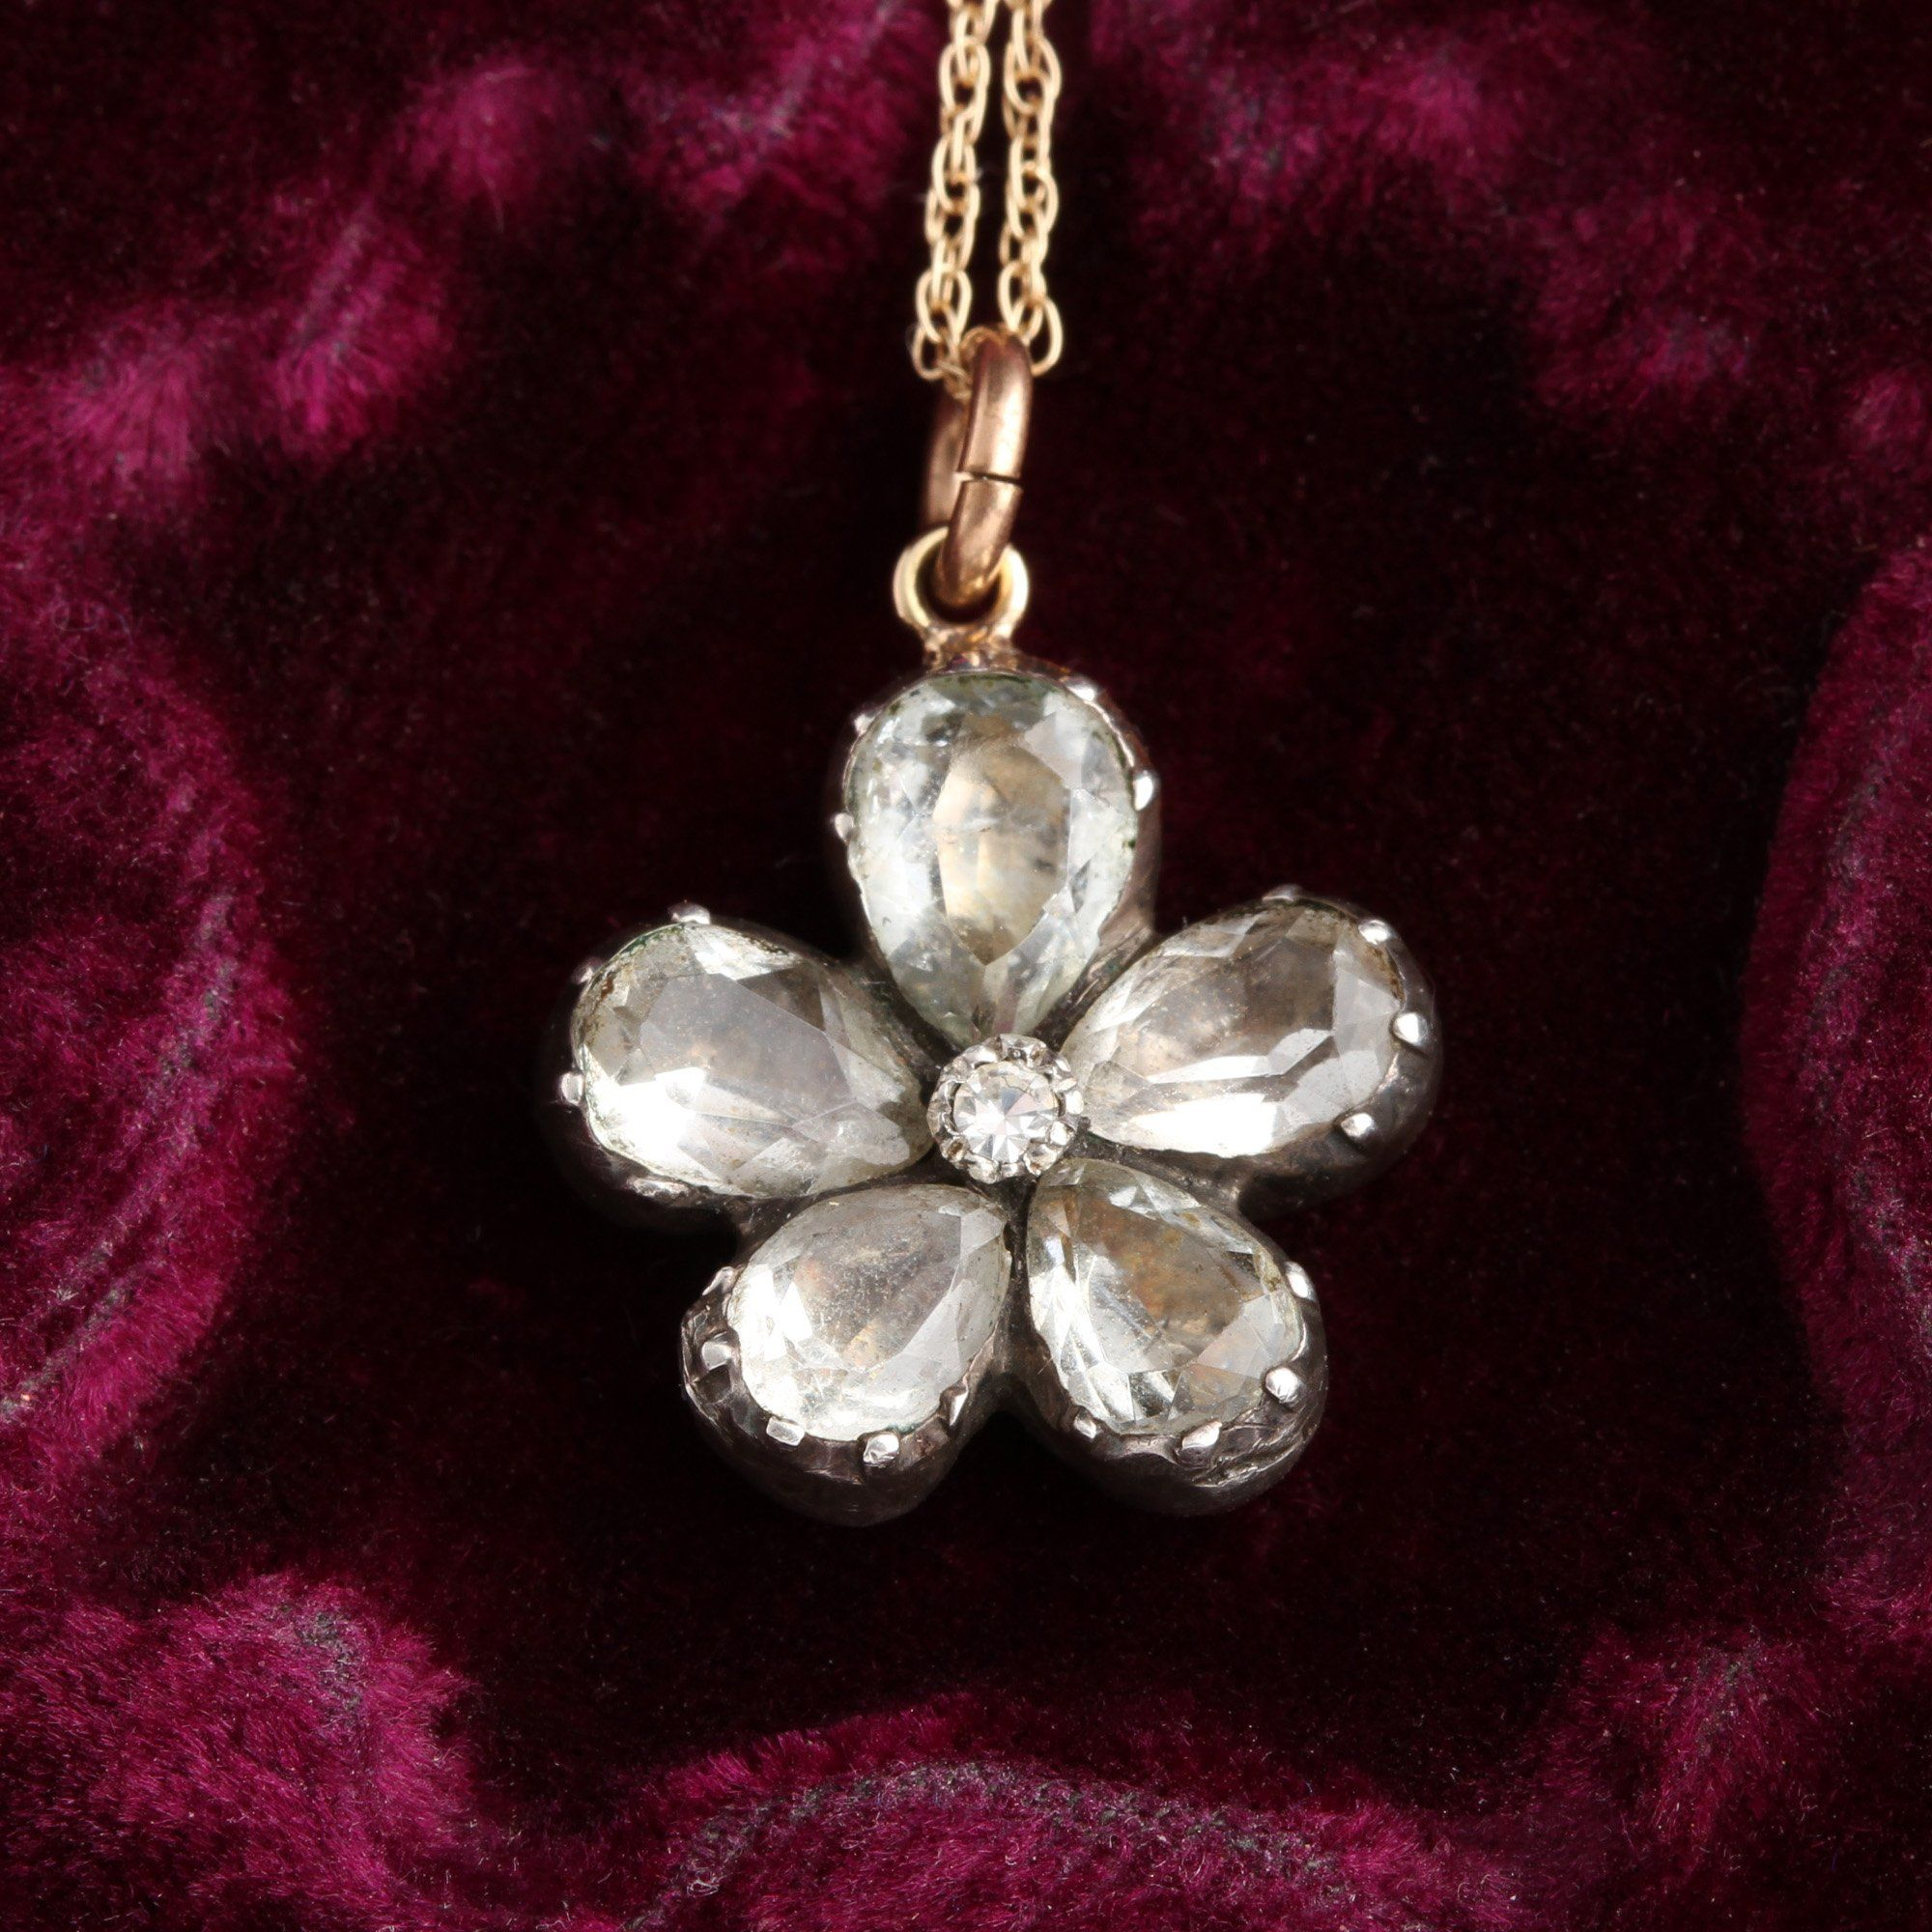 Detail of Georgian Rock Crystal Pansy Pendant